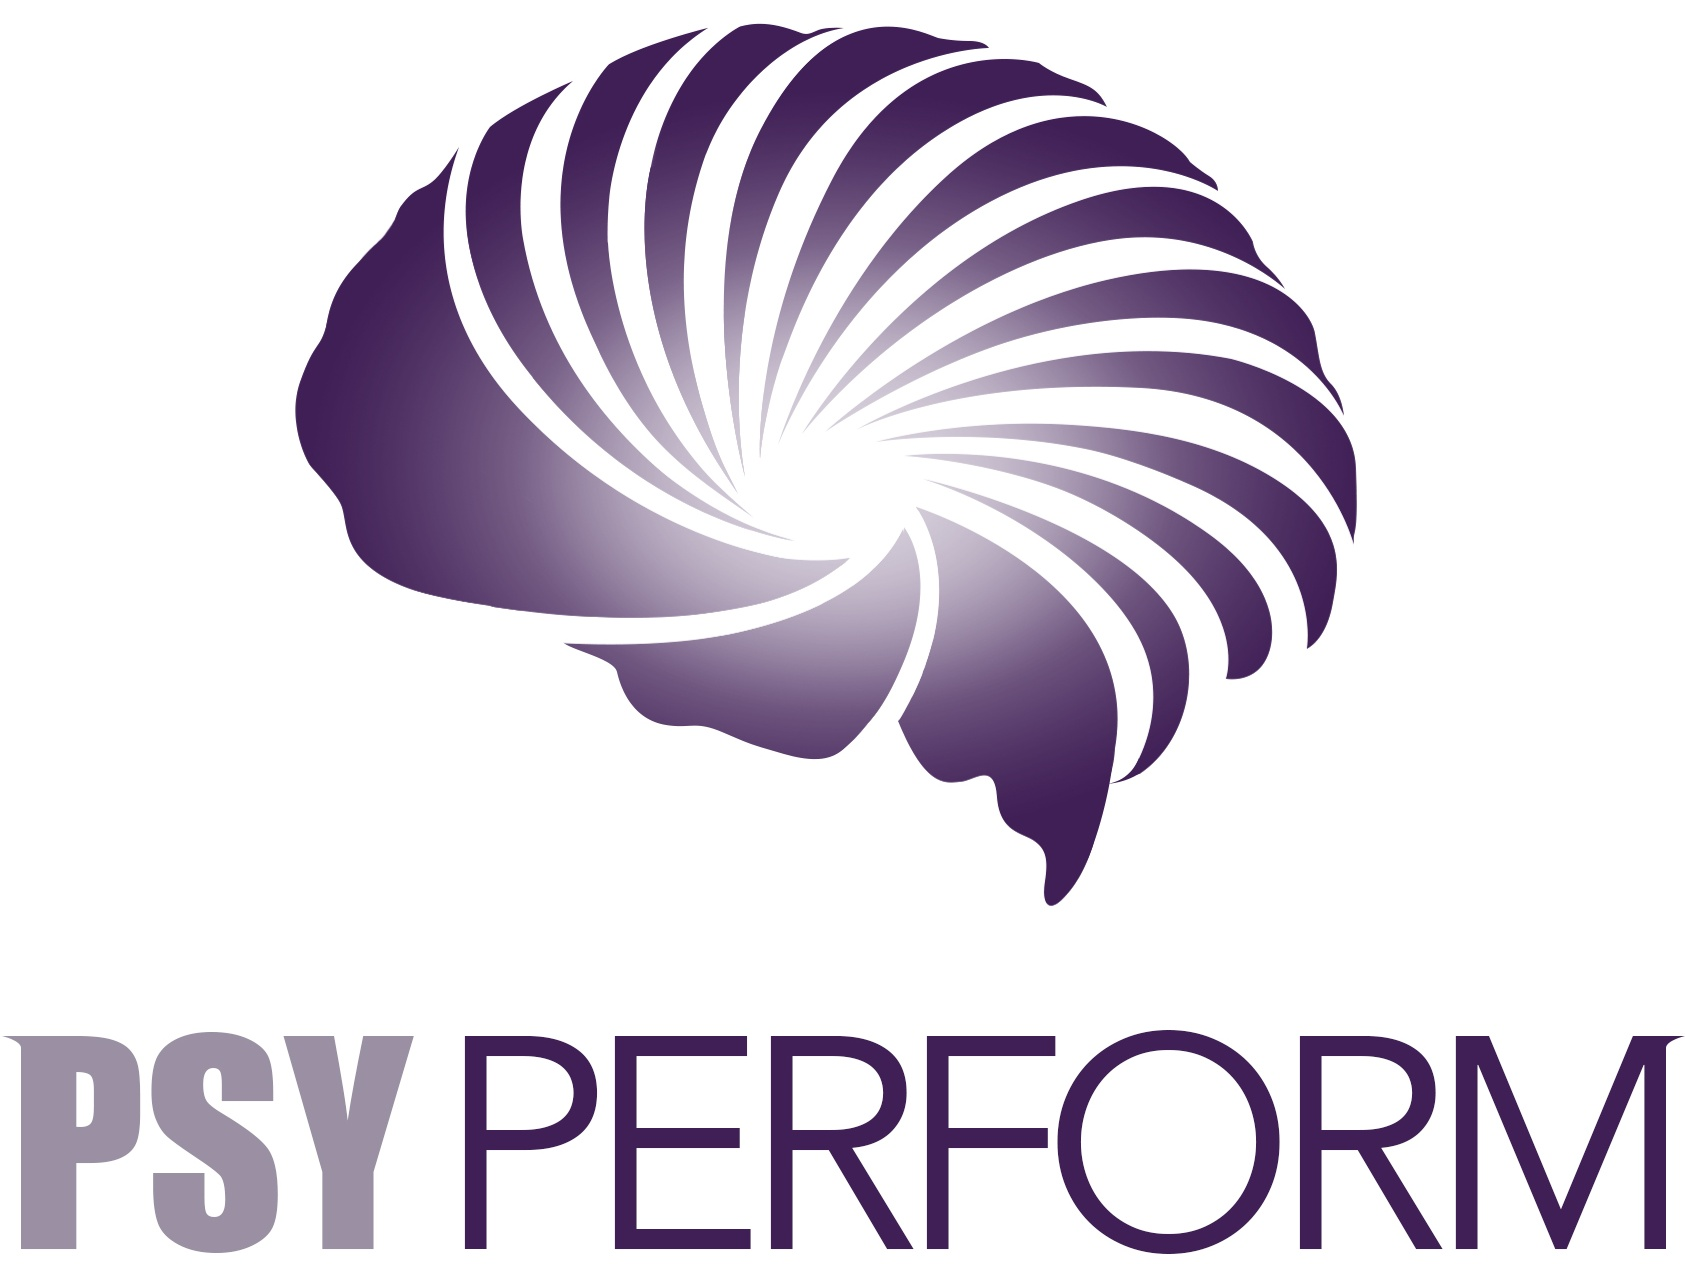 Performance Psychology for Leaders. Leadership Coaching. Executive Coaching. Performance Psychology Consulting.